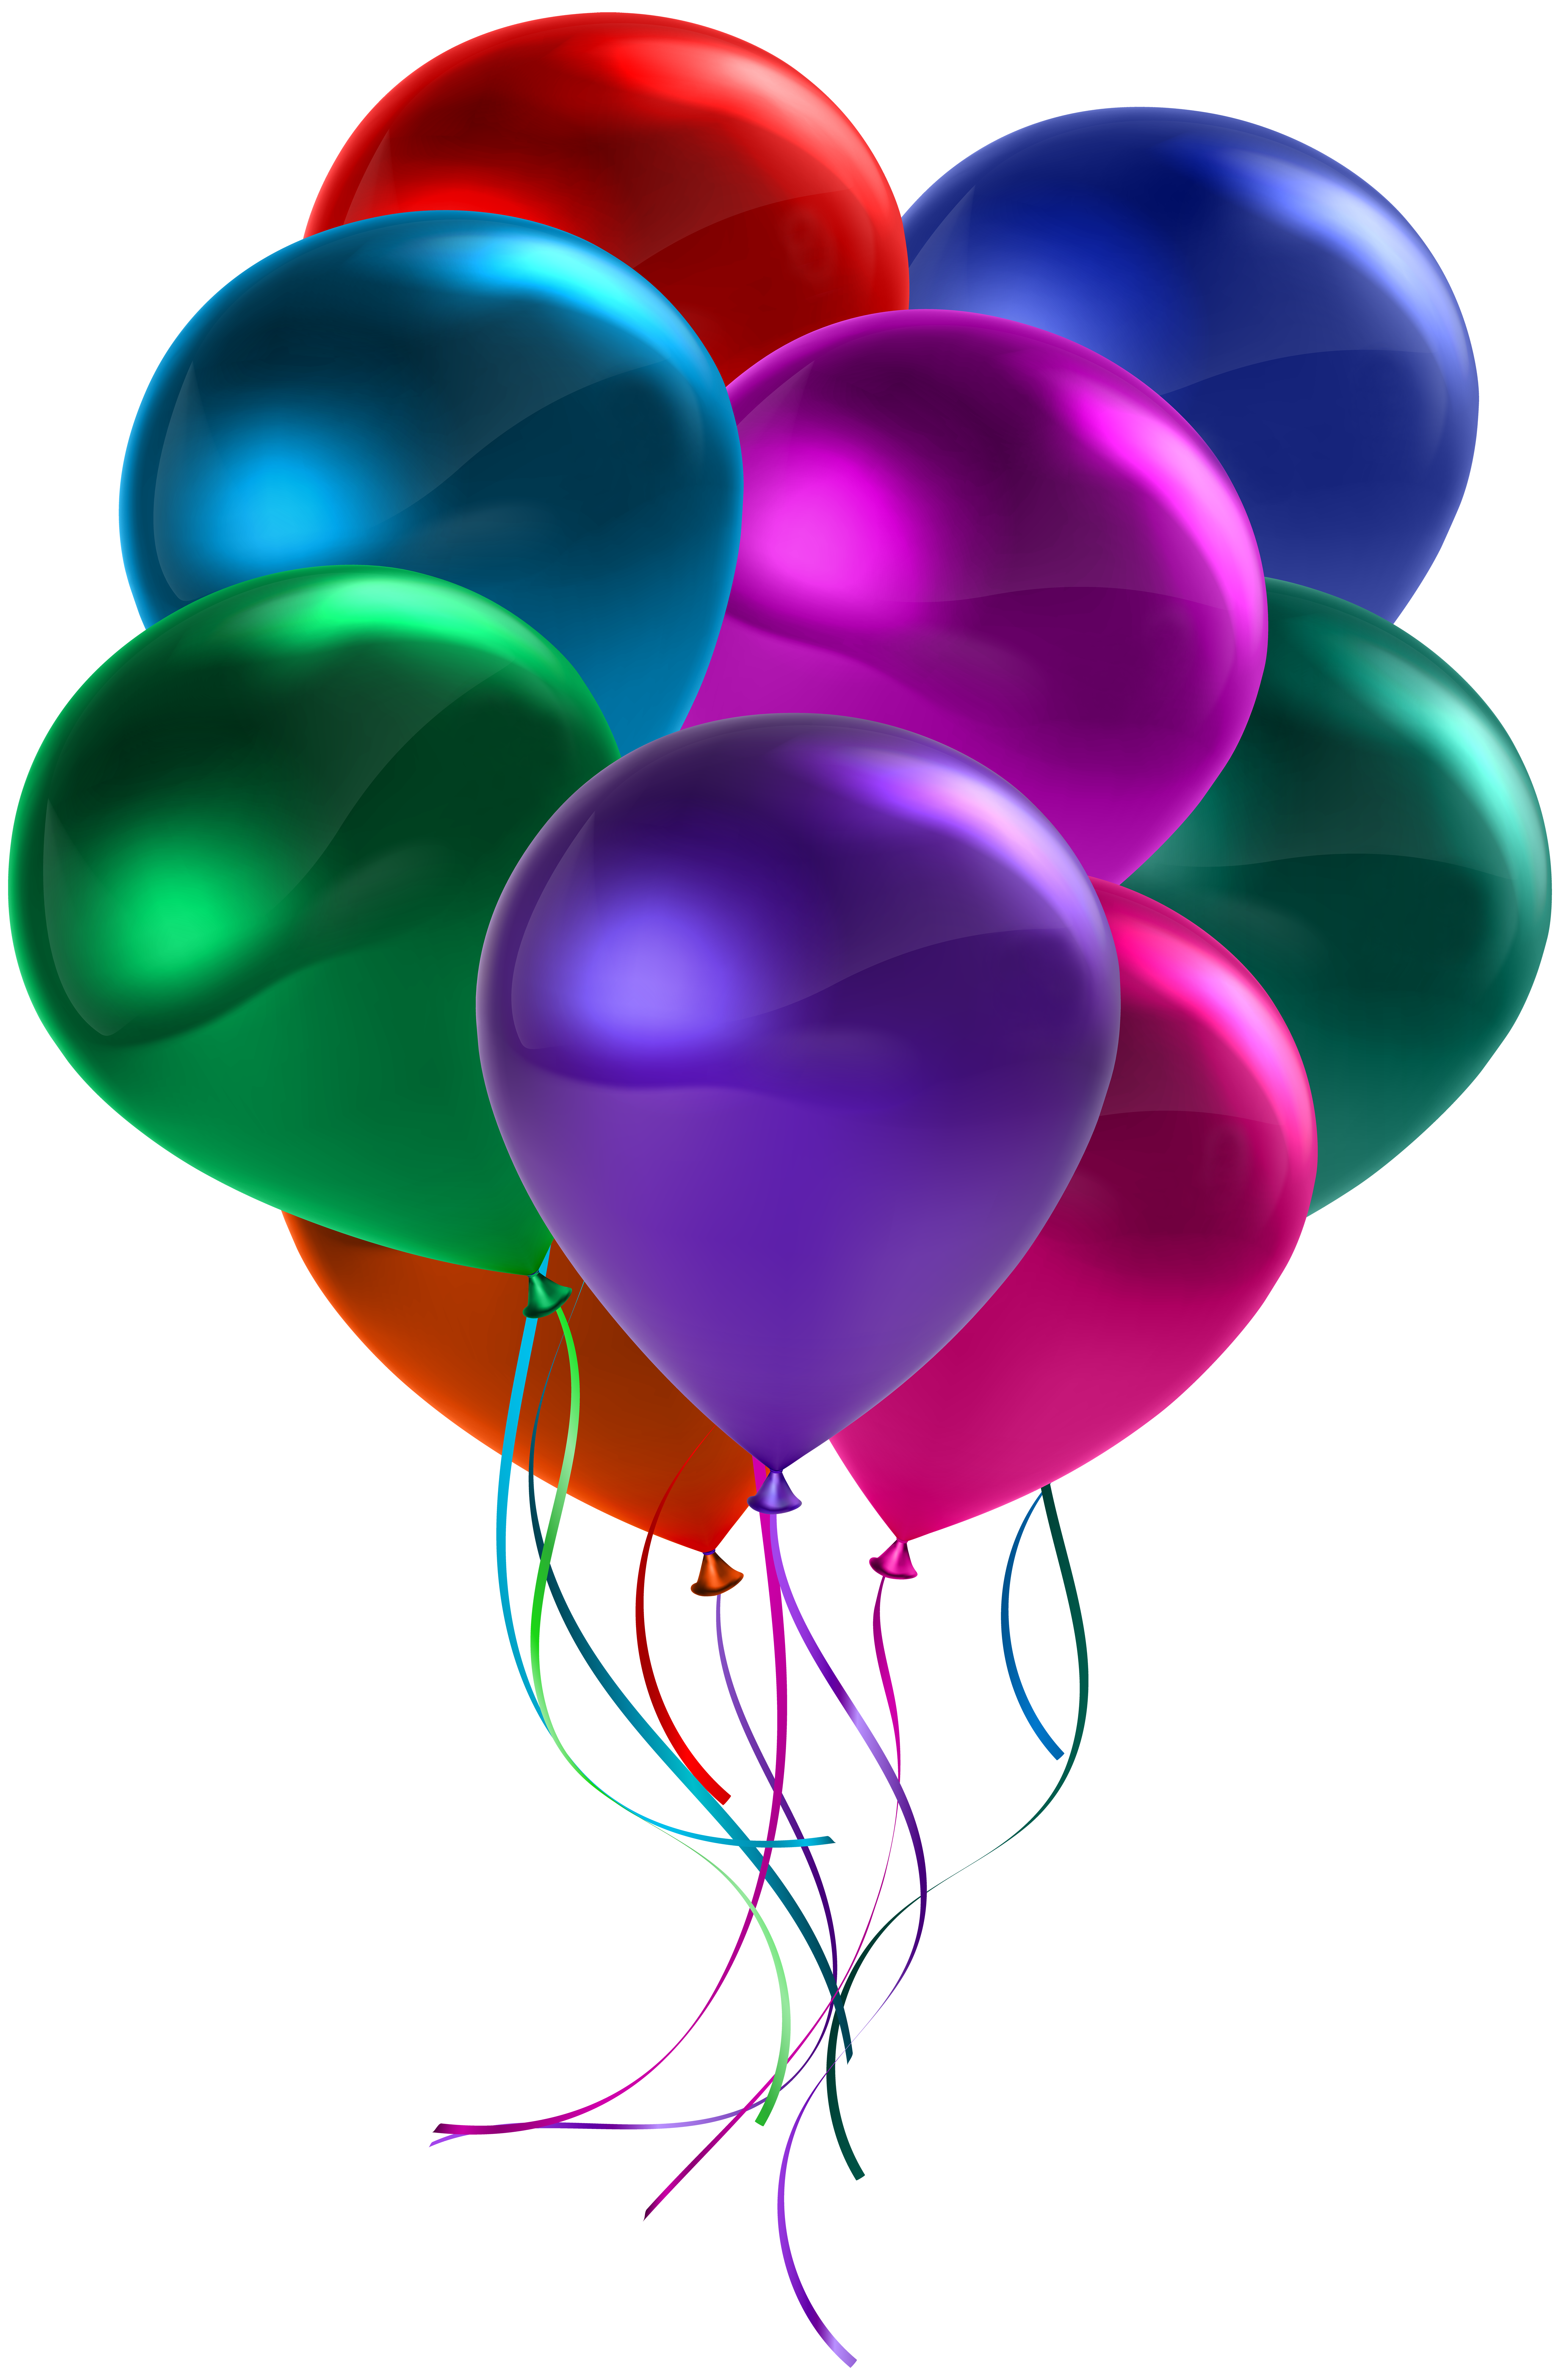 Bunch_of_Colorful_Balloons_Transparent_Clip_Art.png?m=1486865254.